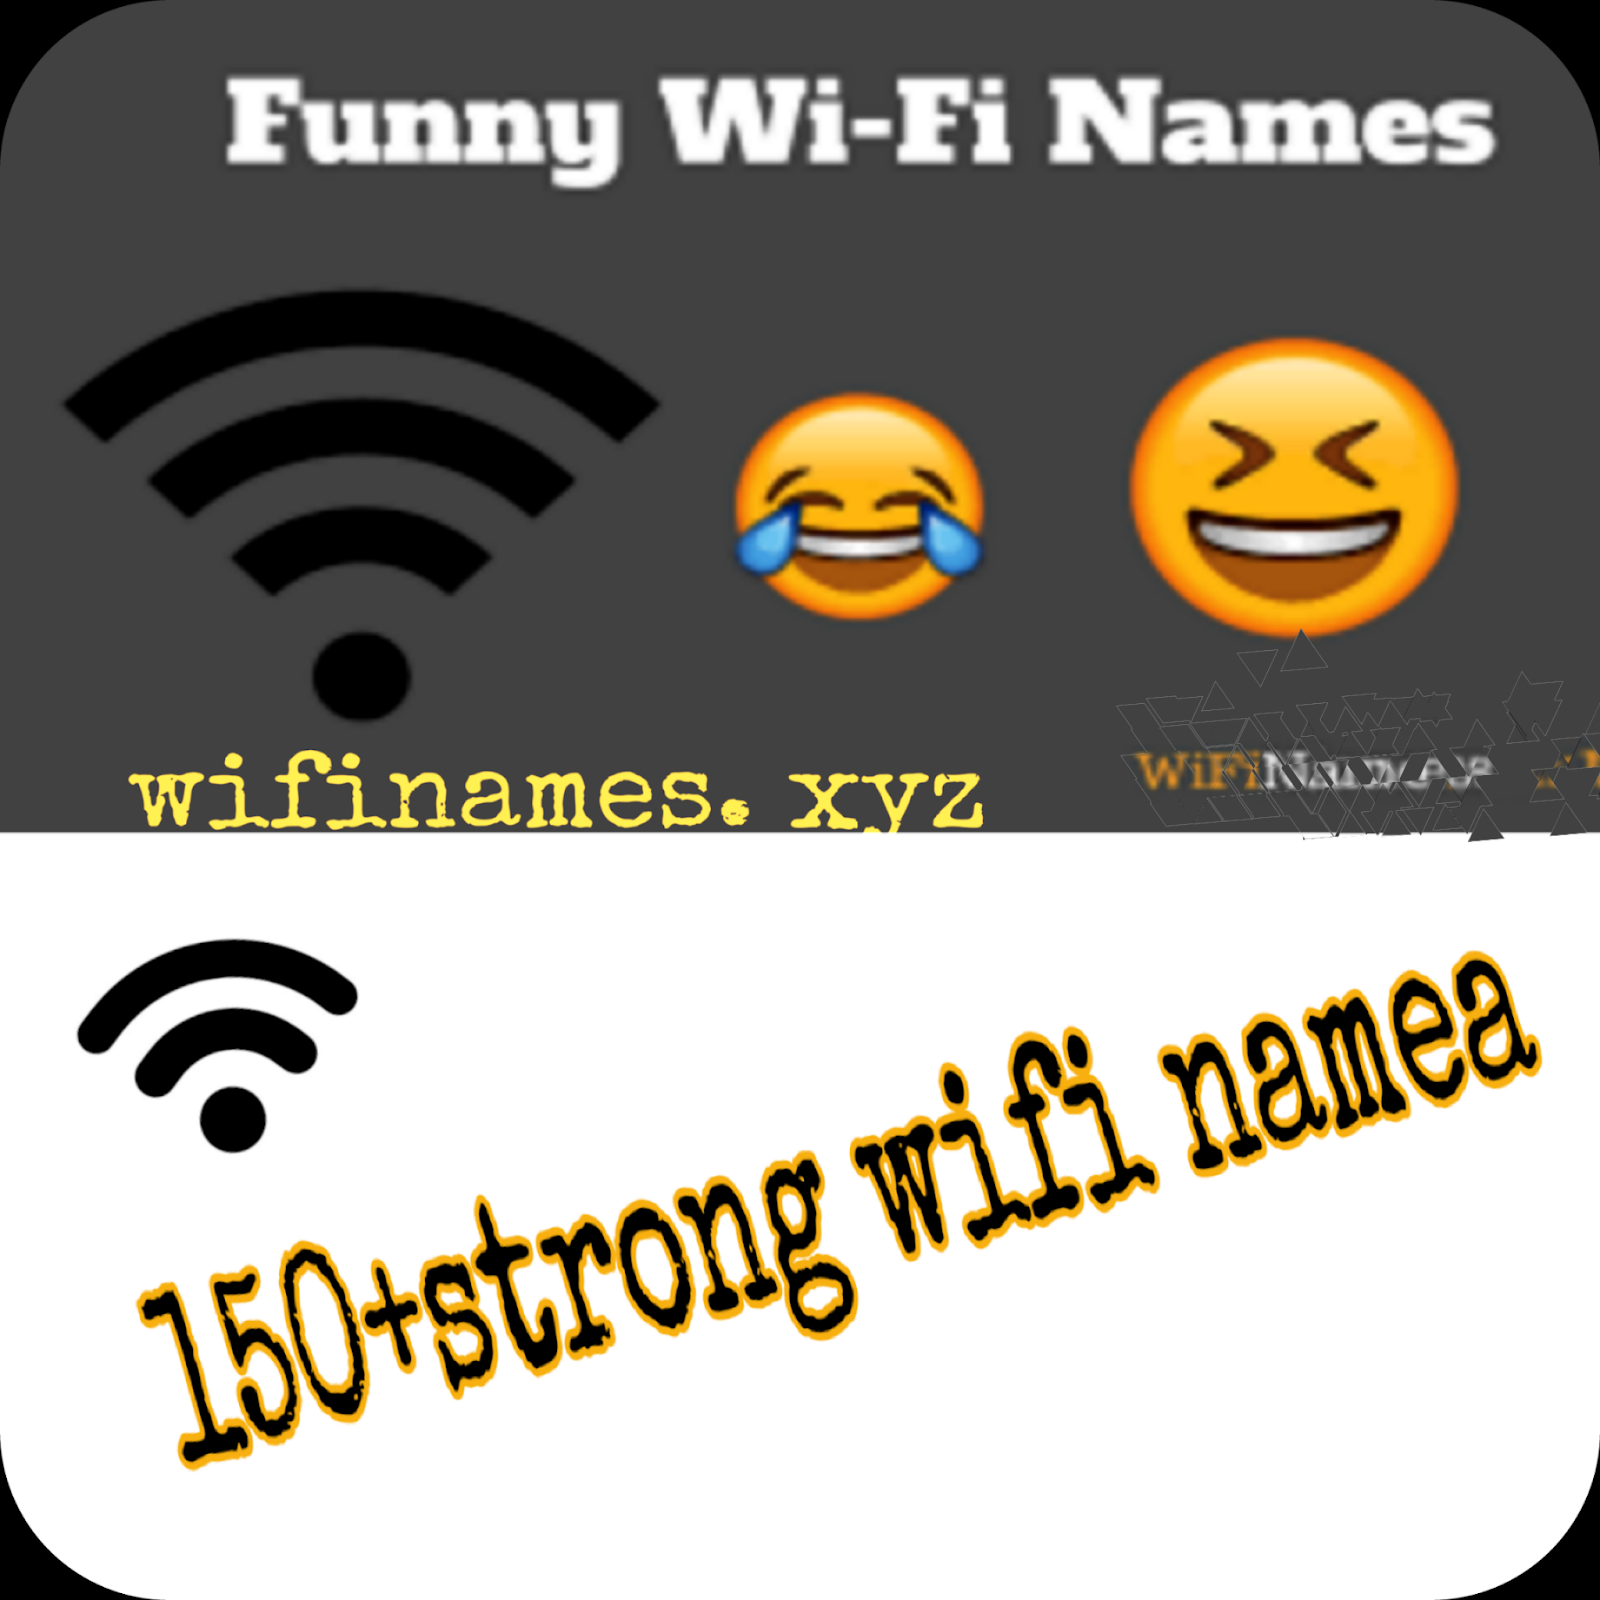 Best Wifi Names 2020 250+ Strong, Funny, Clever, Best WiFi Names and Passwords   Funny